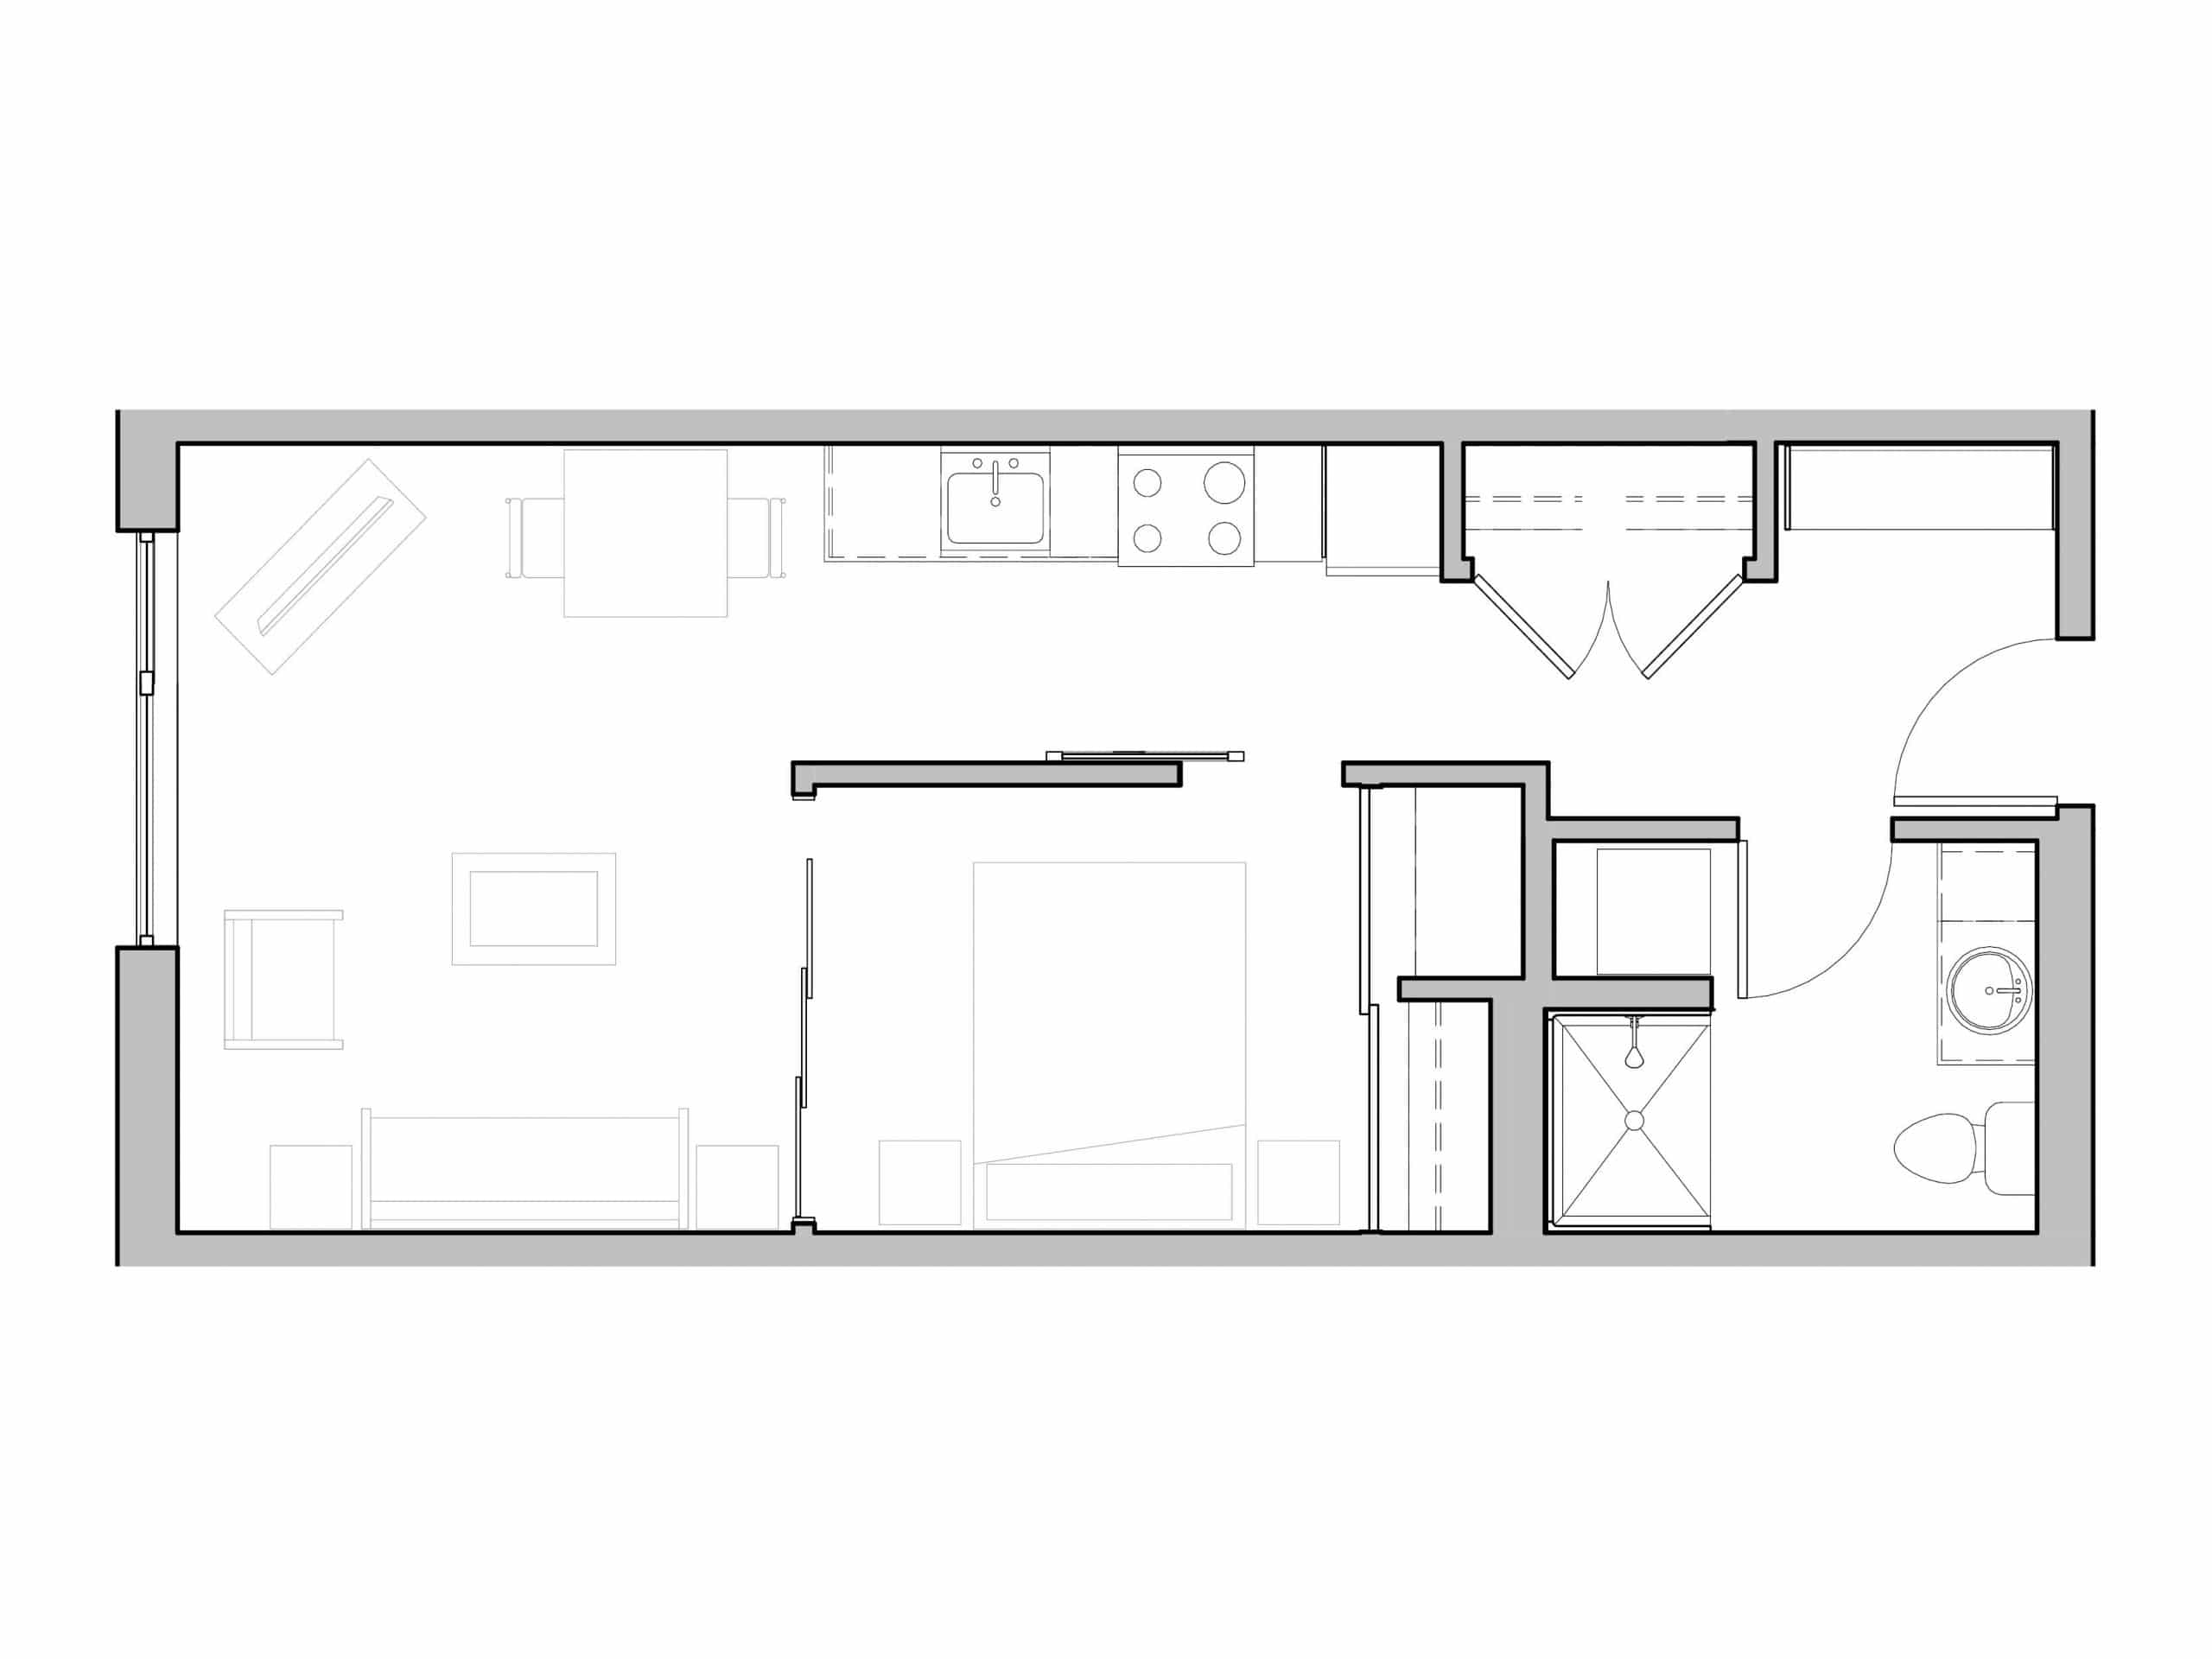 One Bath and One Bedroom in-unit washer and dryer open floorplan at Seattle's Ivy at Interbay.